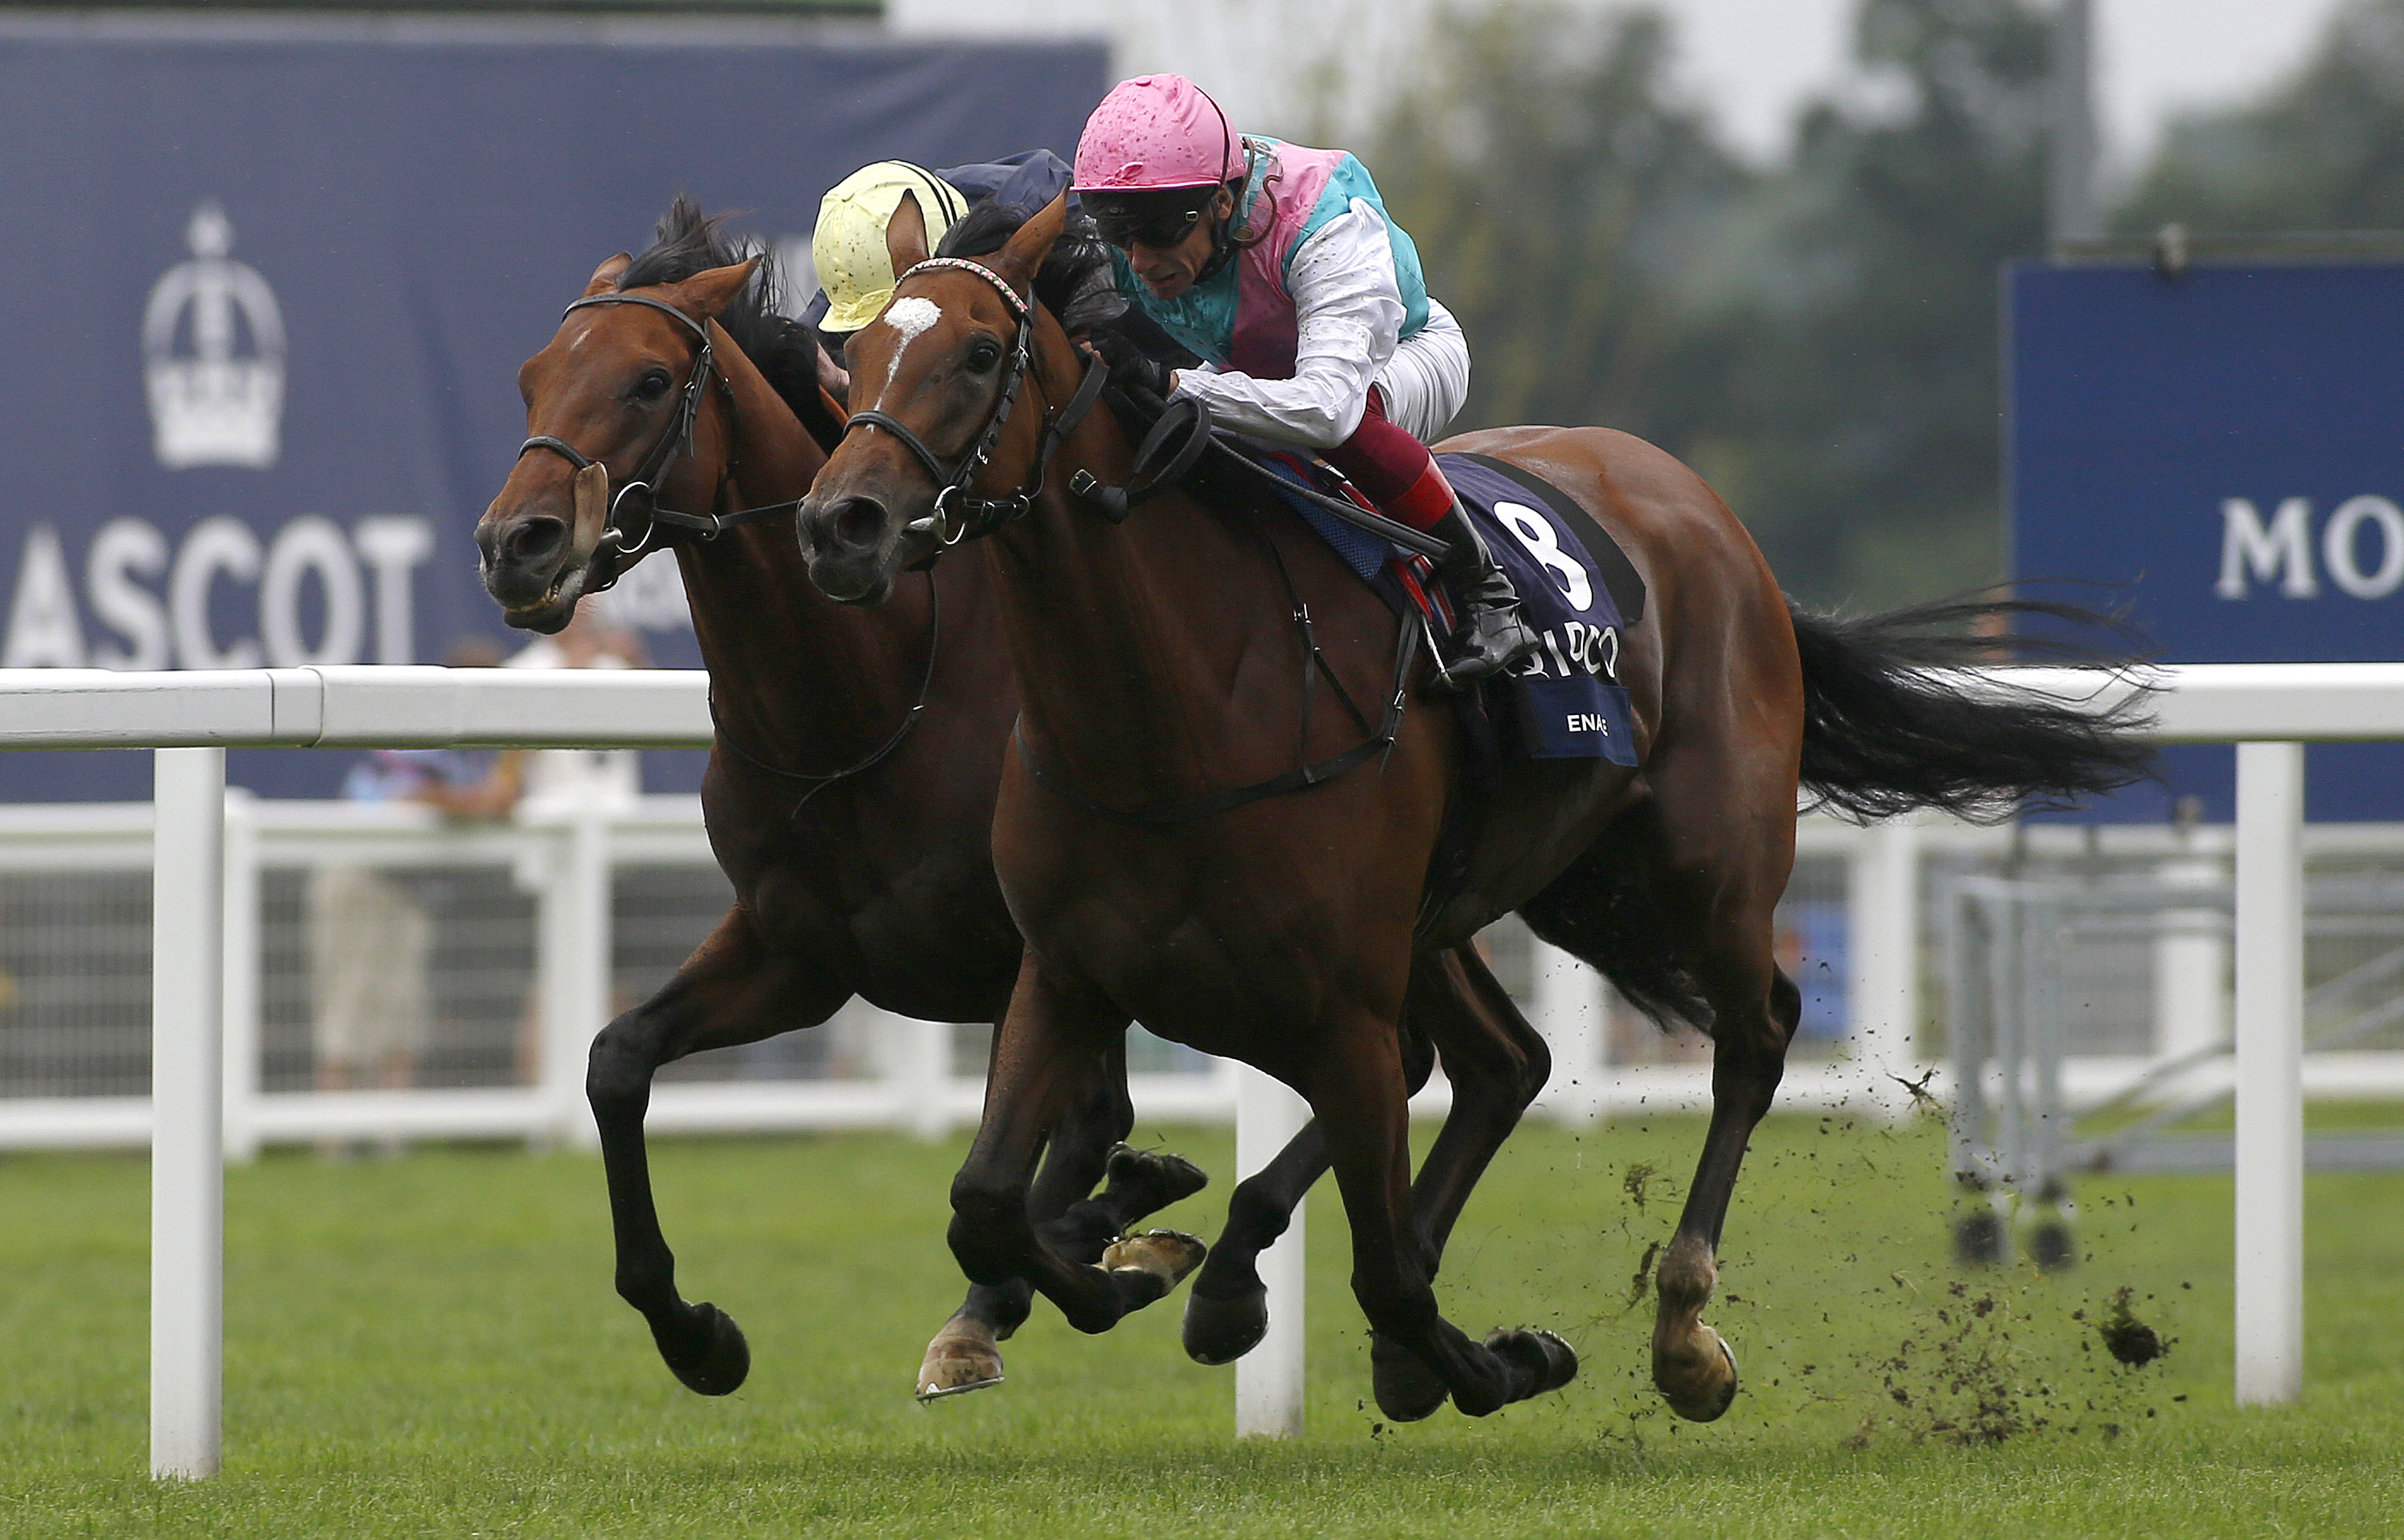 Enable and Frankie Dettori (right) get the better of Crystal Ocean in the King George